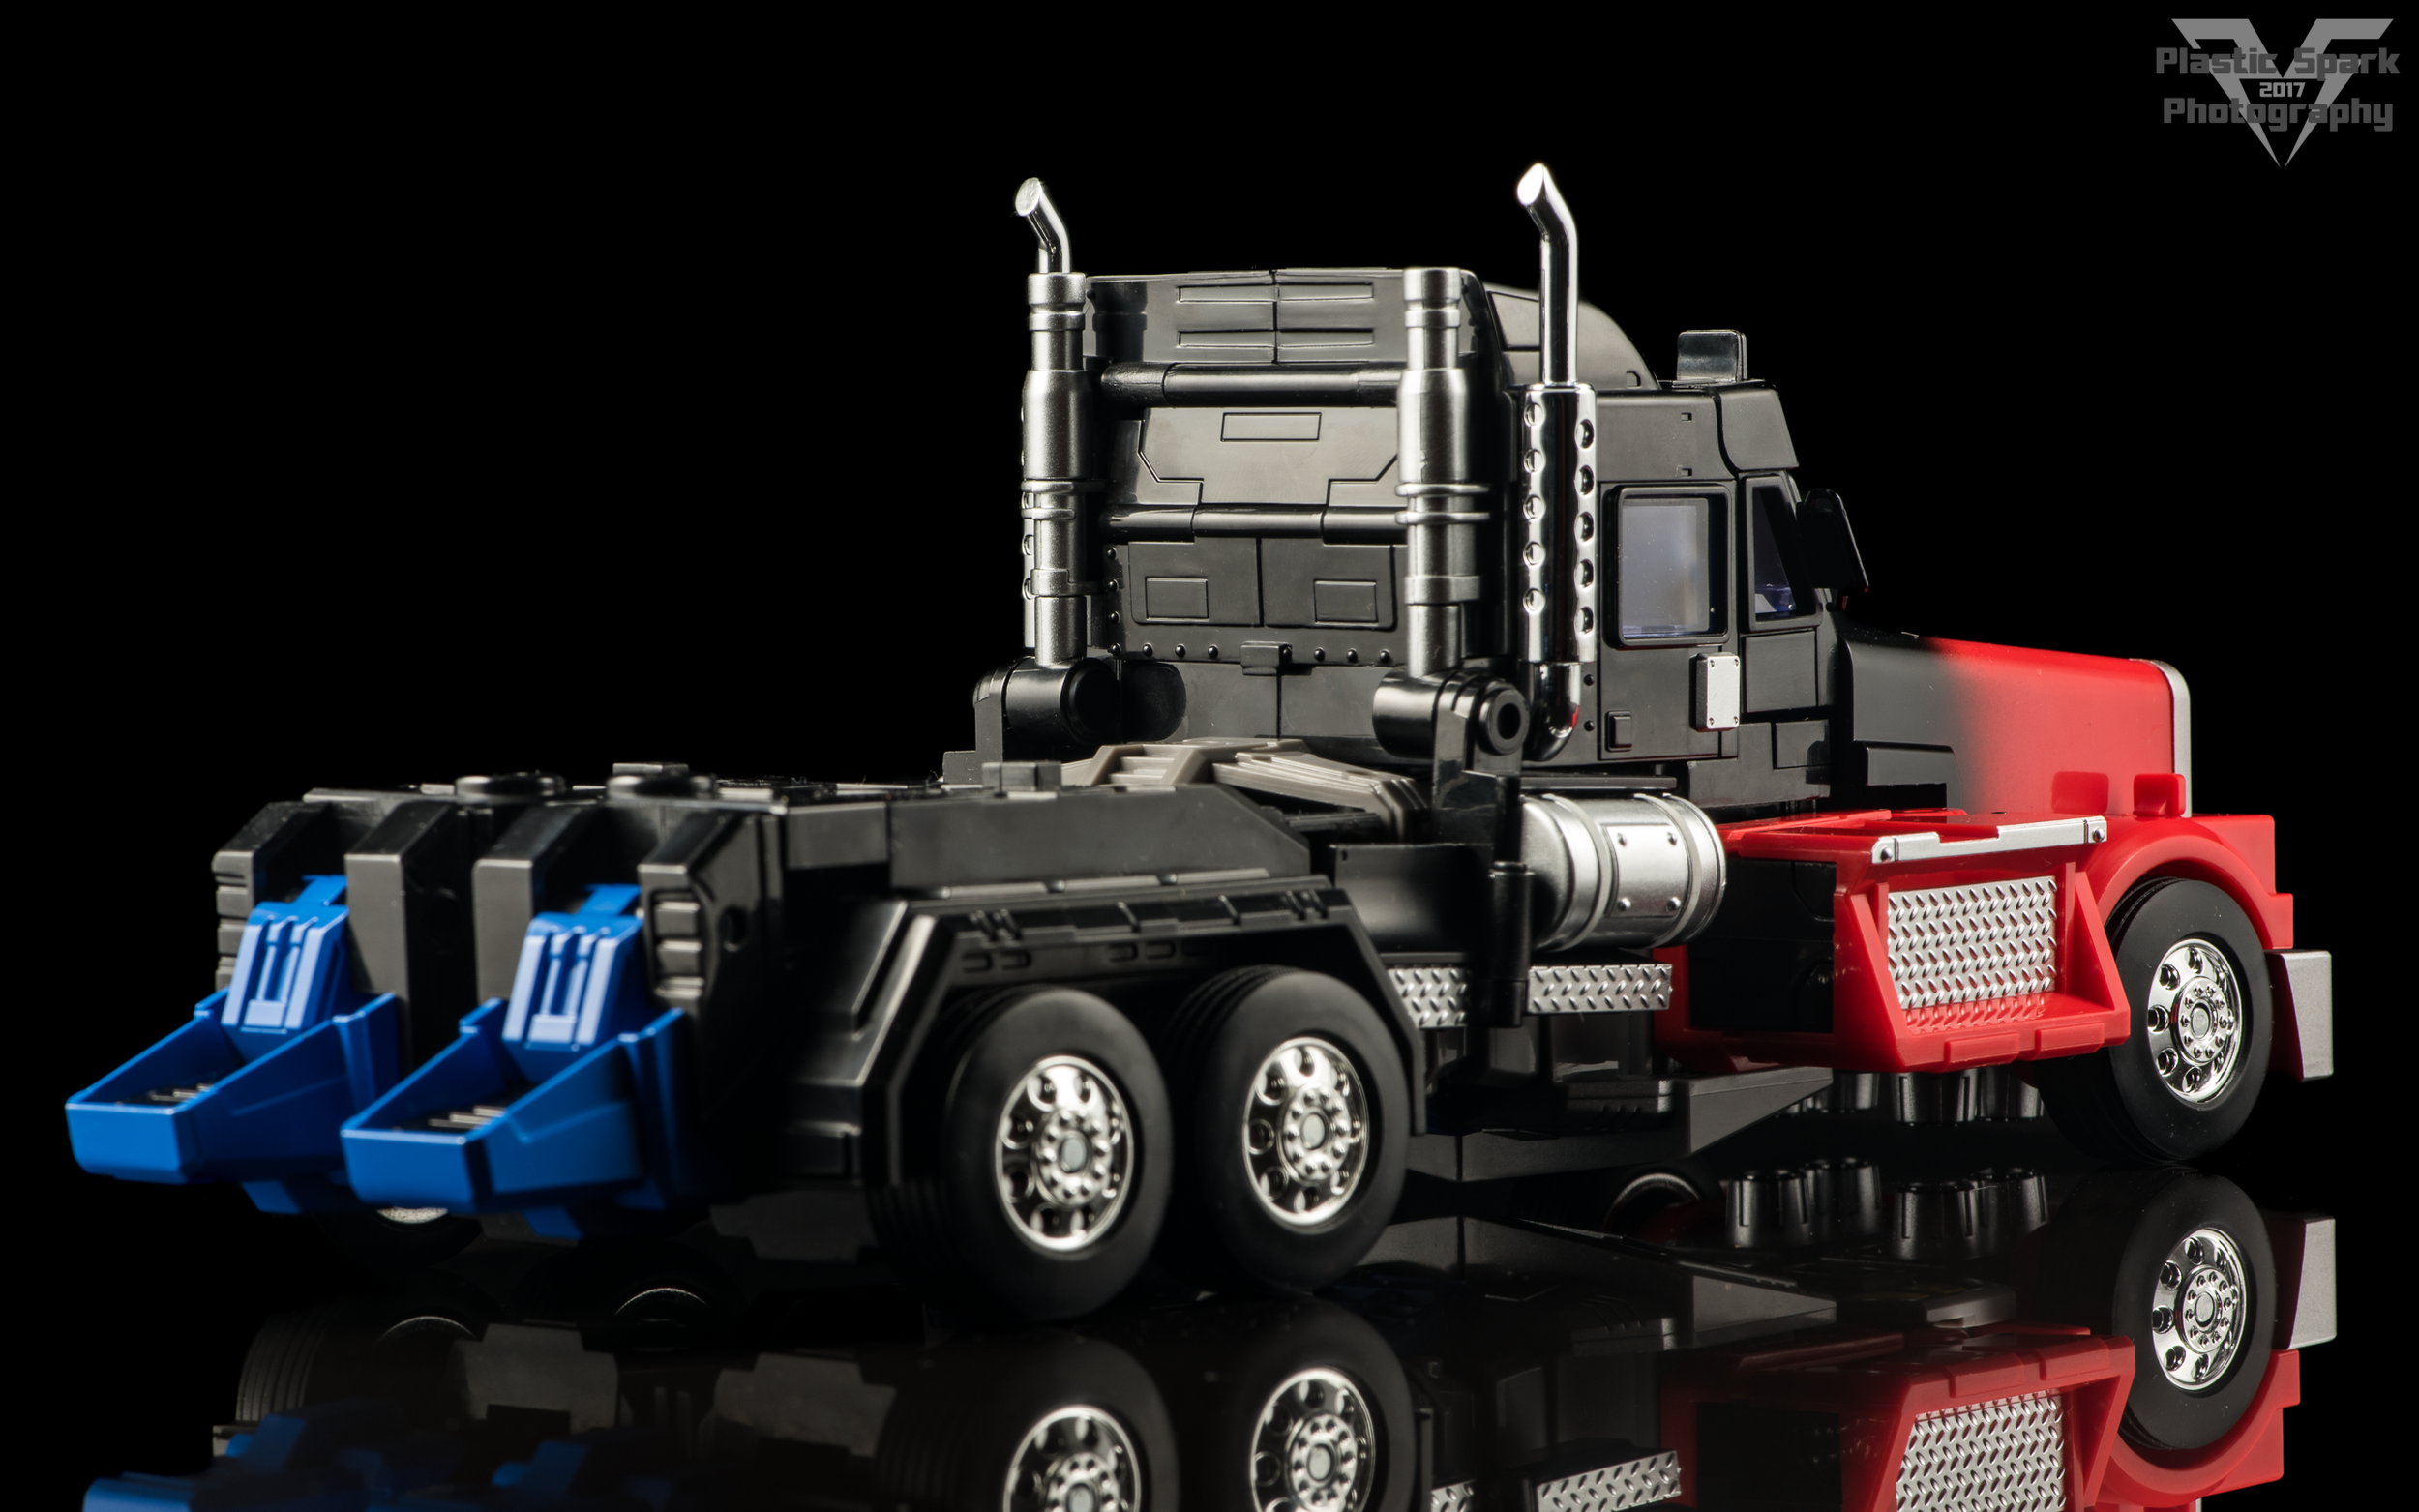 Fans-Hobby-MB-04-Gunfighter-II-(3-of-61).png